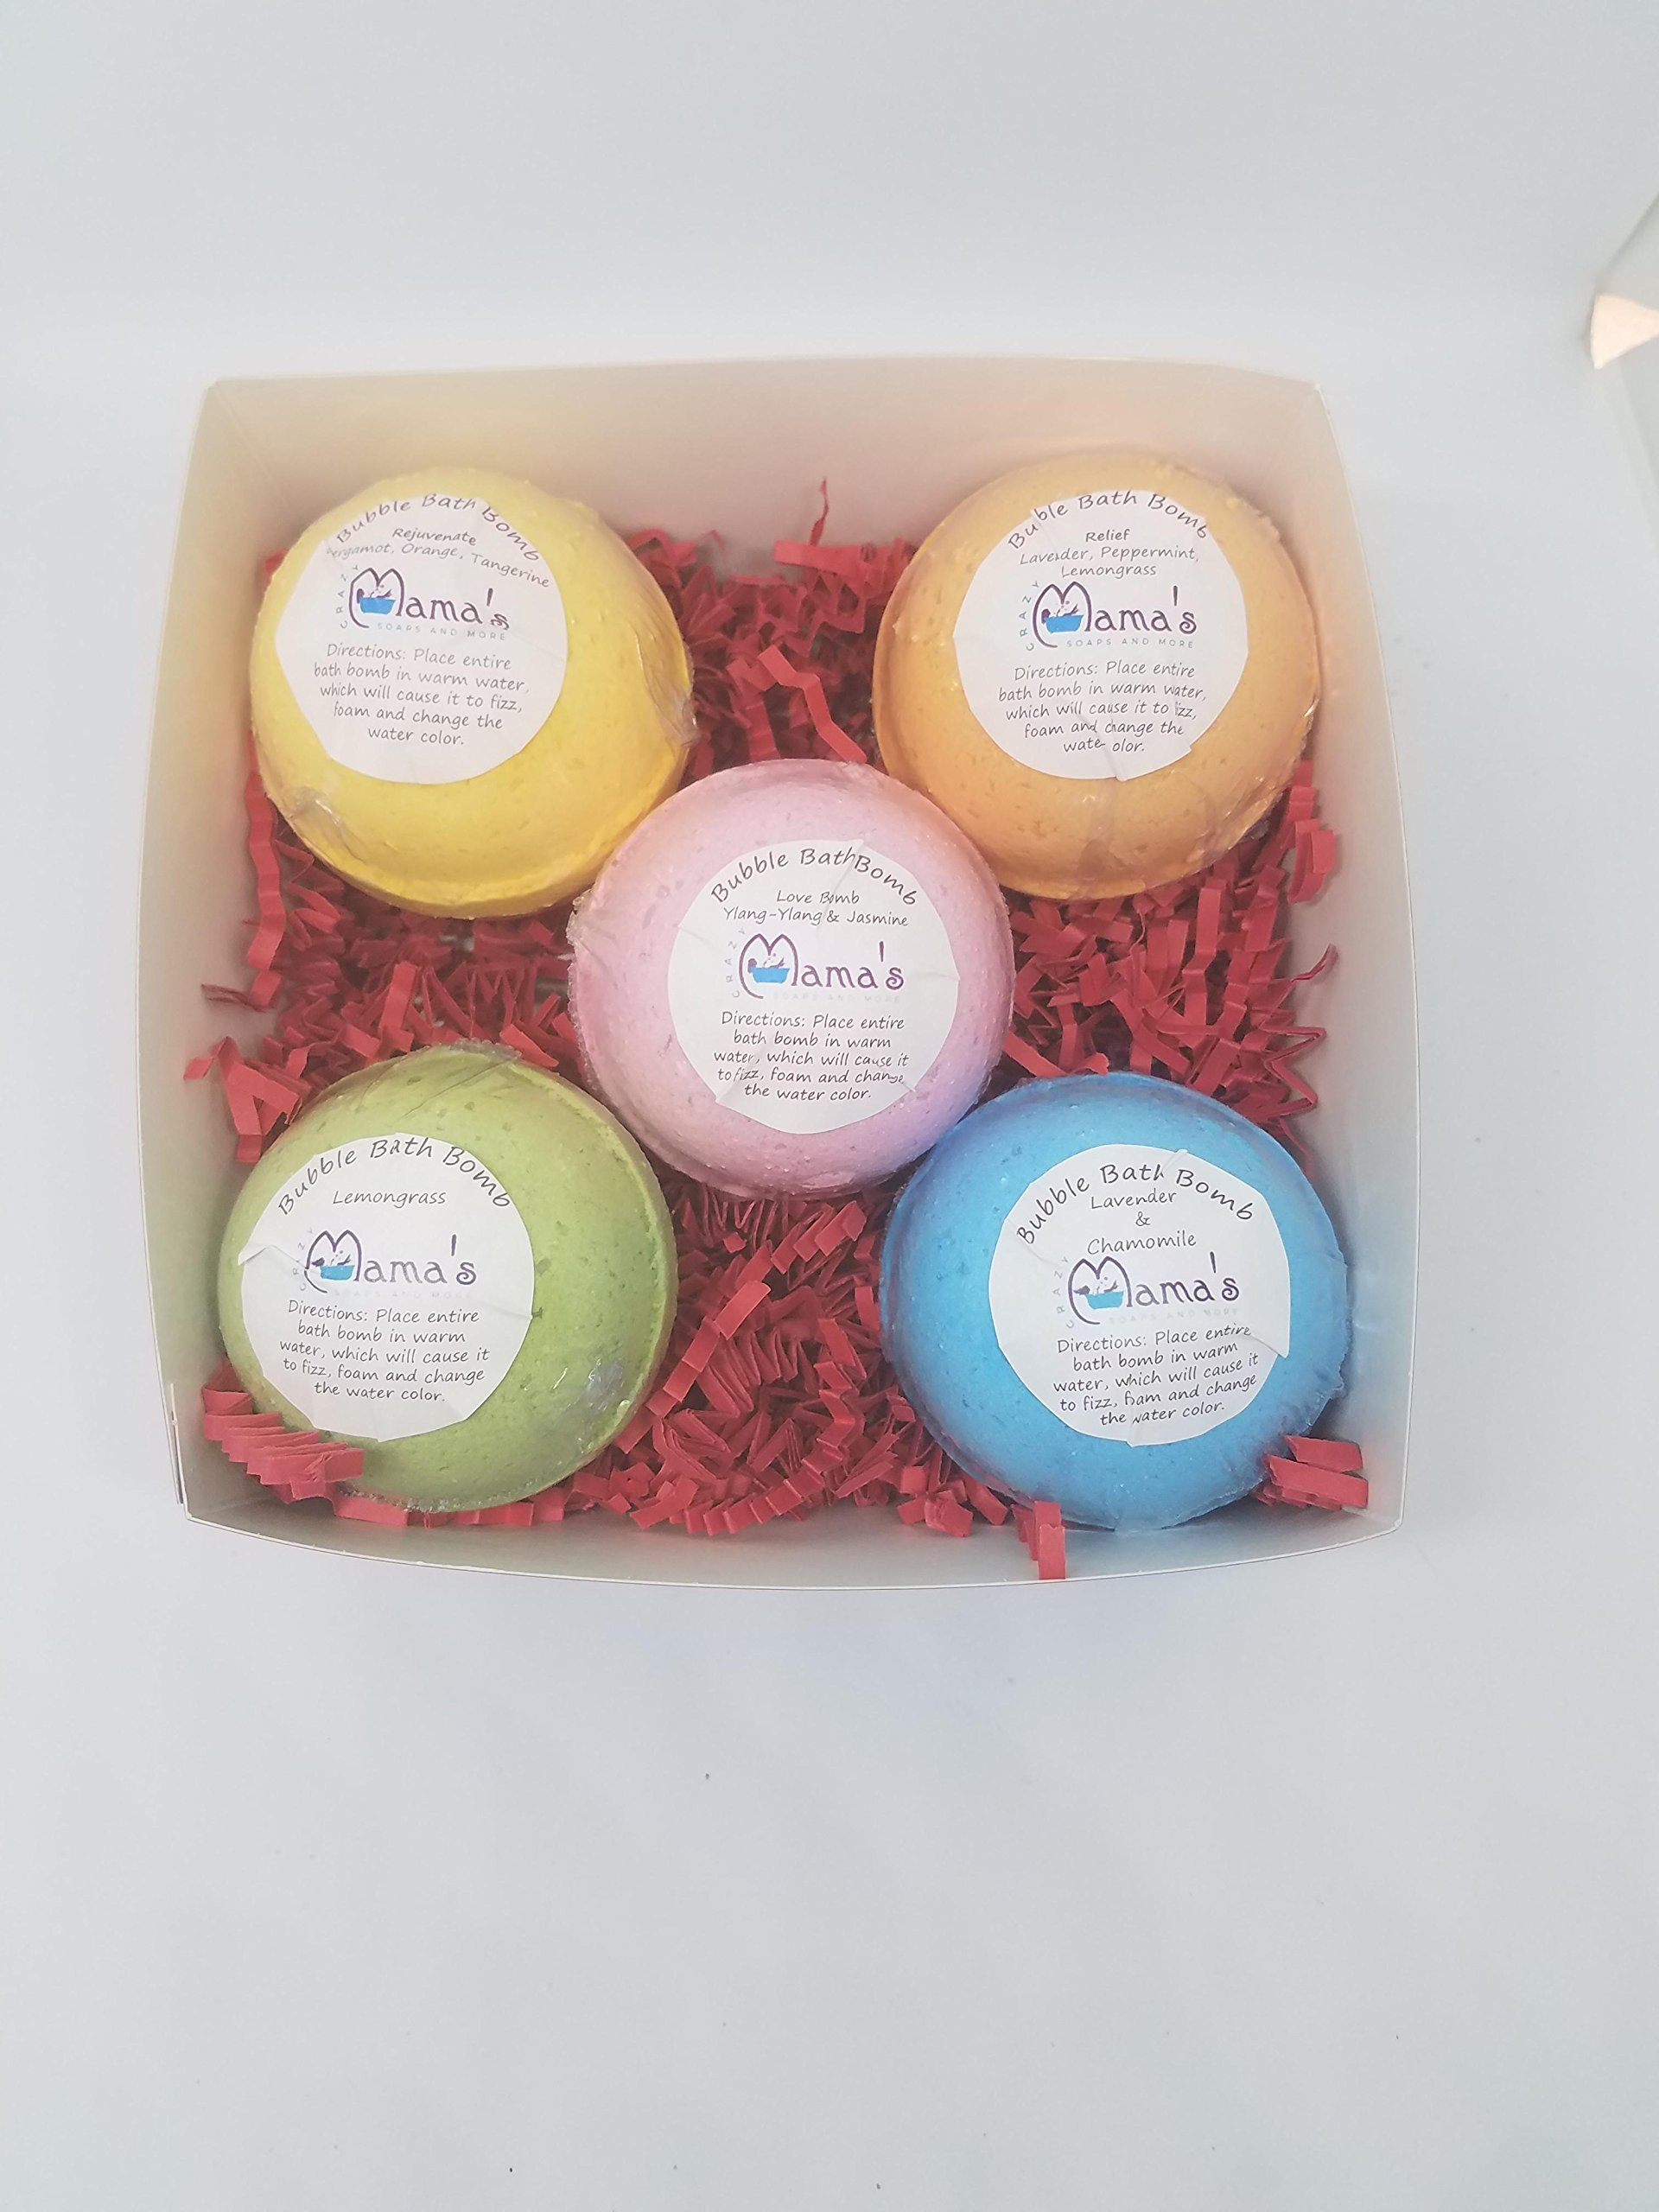 Bath Bomb Gift Set - 5 Pack Essential Oil Bath Bomb Set - Large 4.5 oz, 2.5 inch by Crazy Mama's Soaps and More Gift Box with packing - Handmade in Colorado. by Crazy Mama's Soaps and More